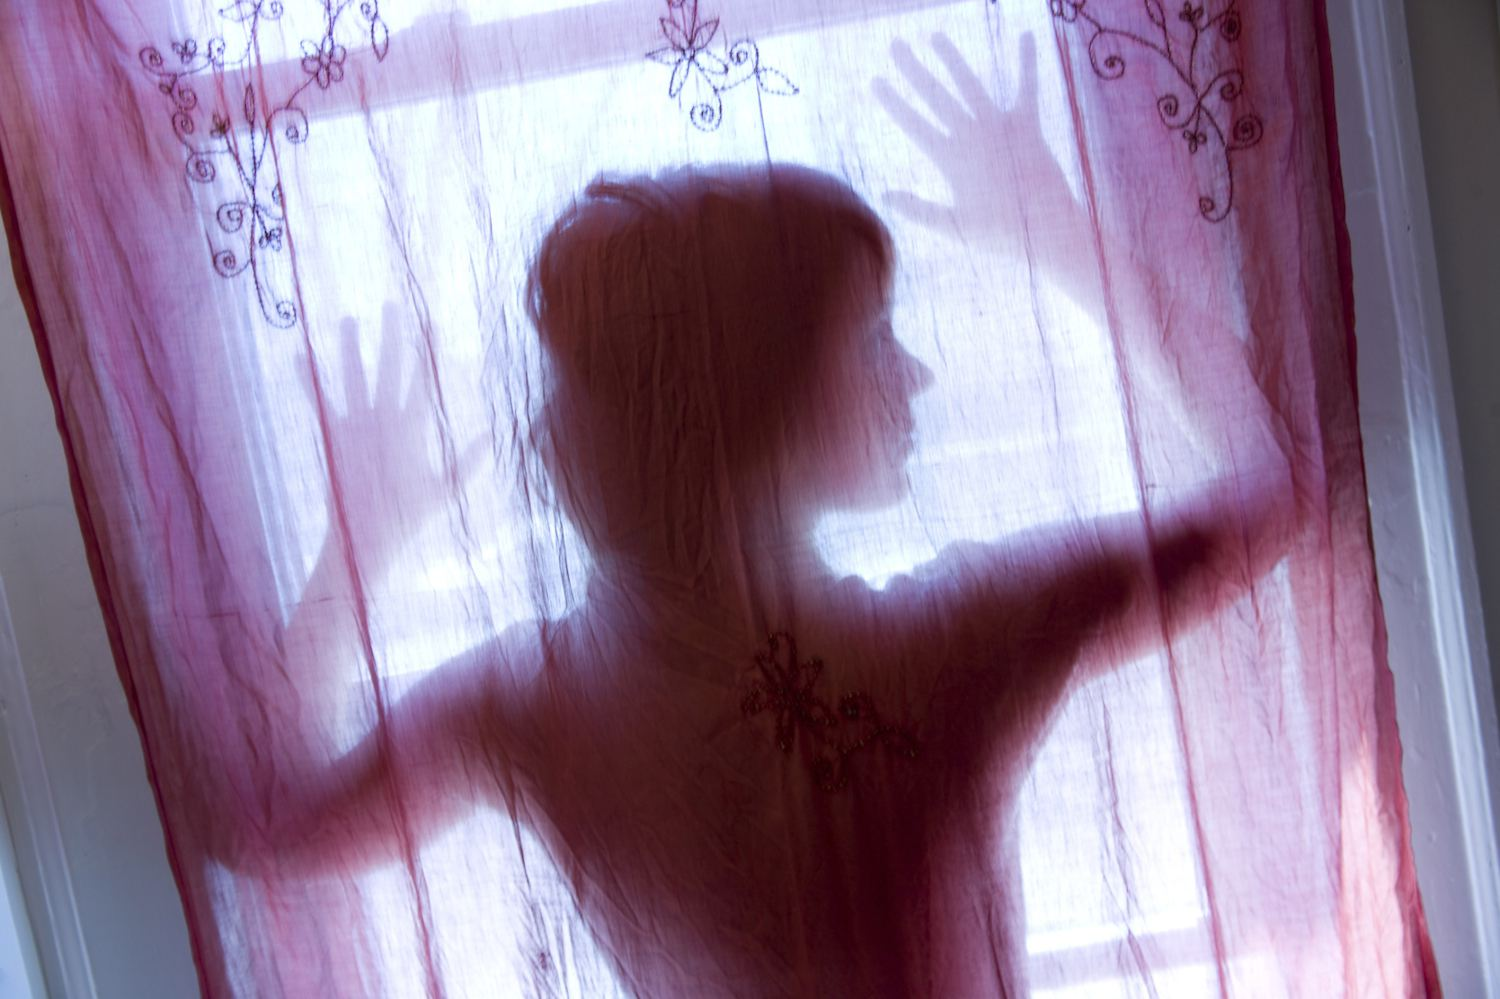 Ghostly woman in window